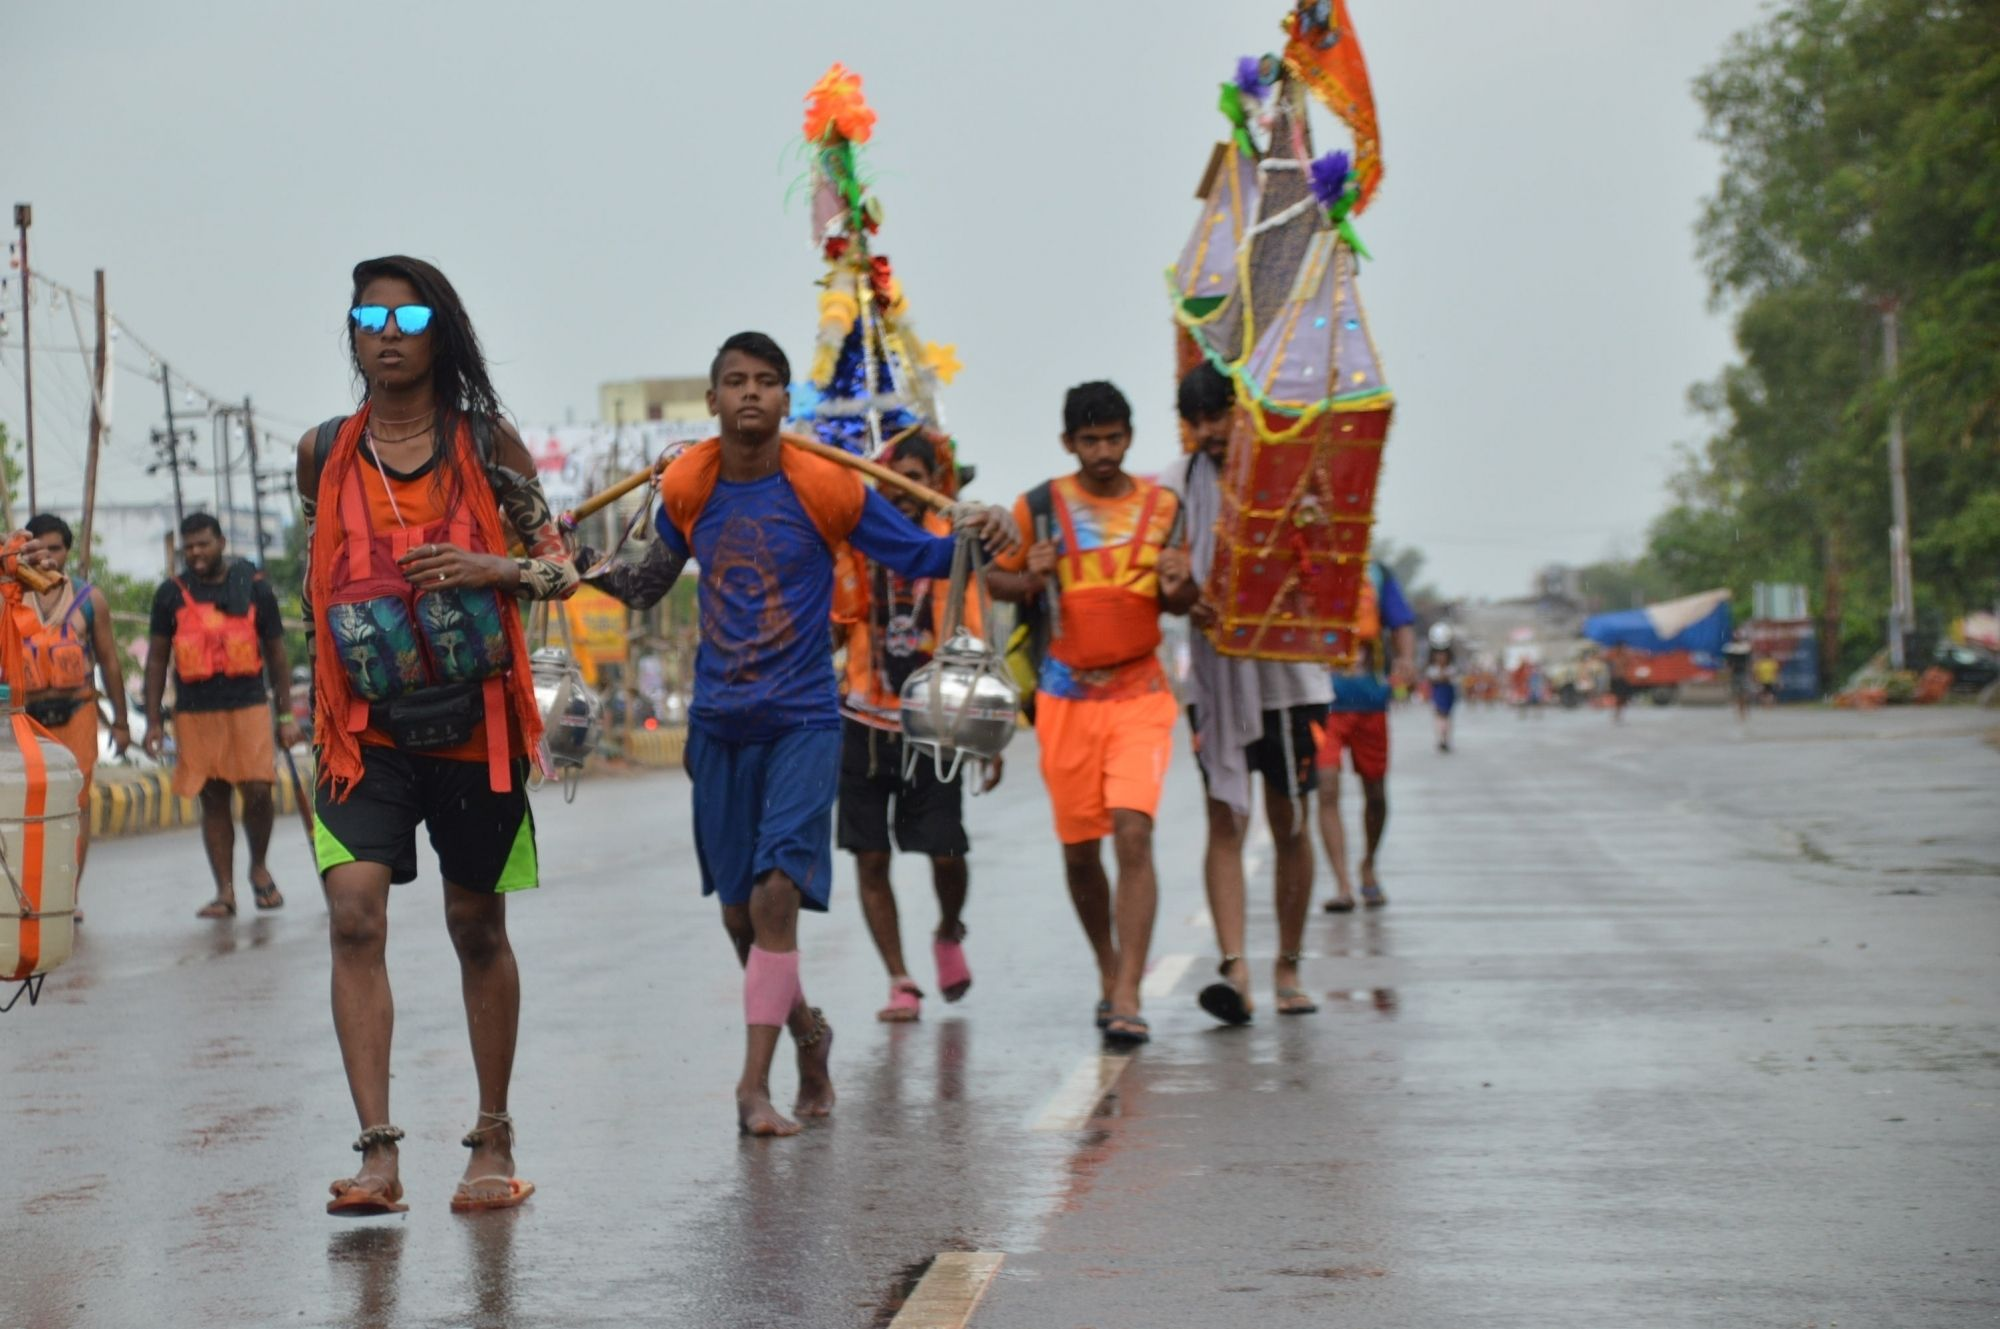 Delhi Cancels Kanwar Yatra, After UP and Uttarakhand in View of COVID-19  Situation   India.com